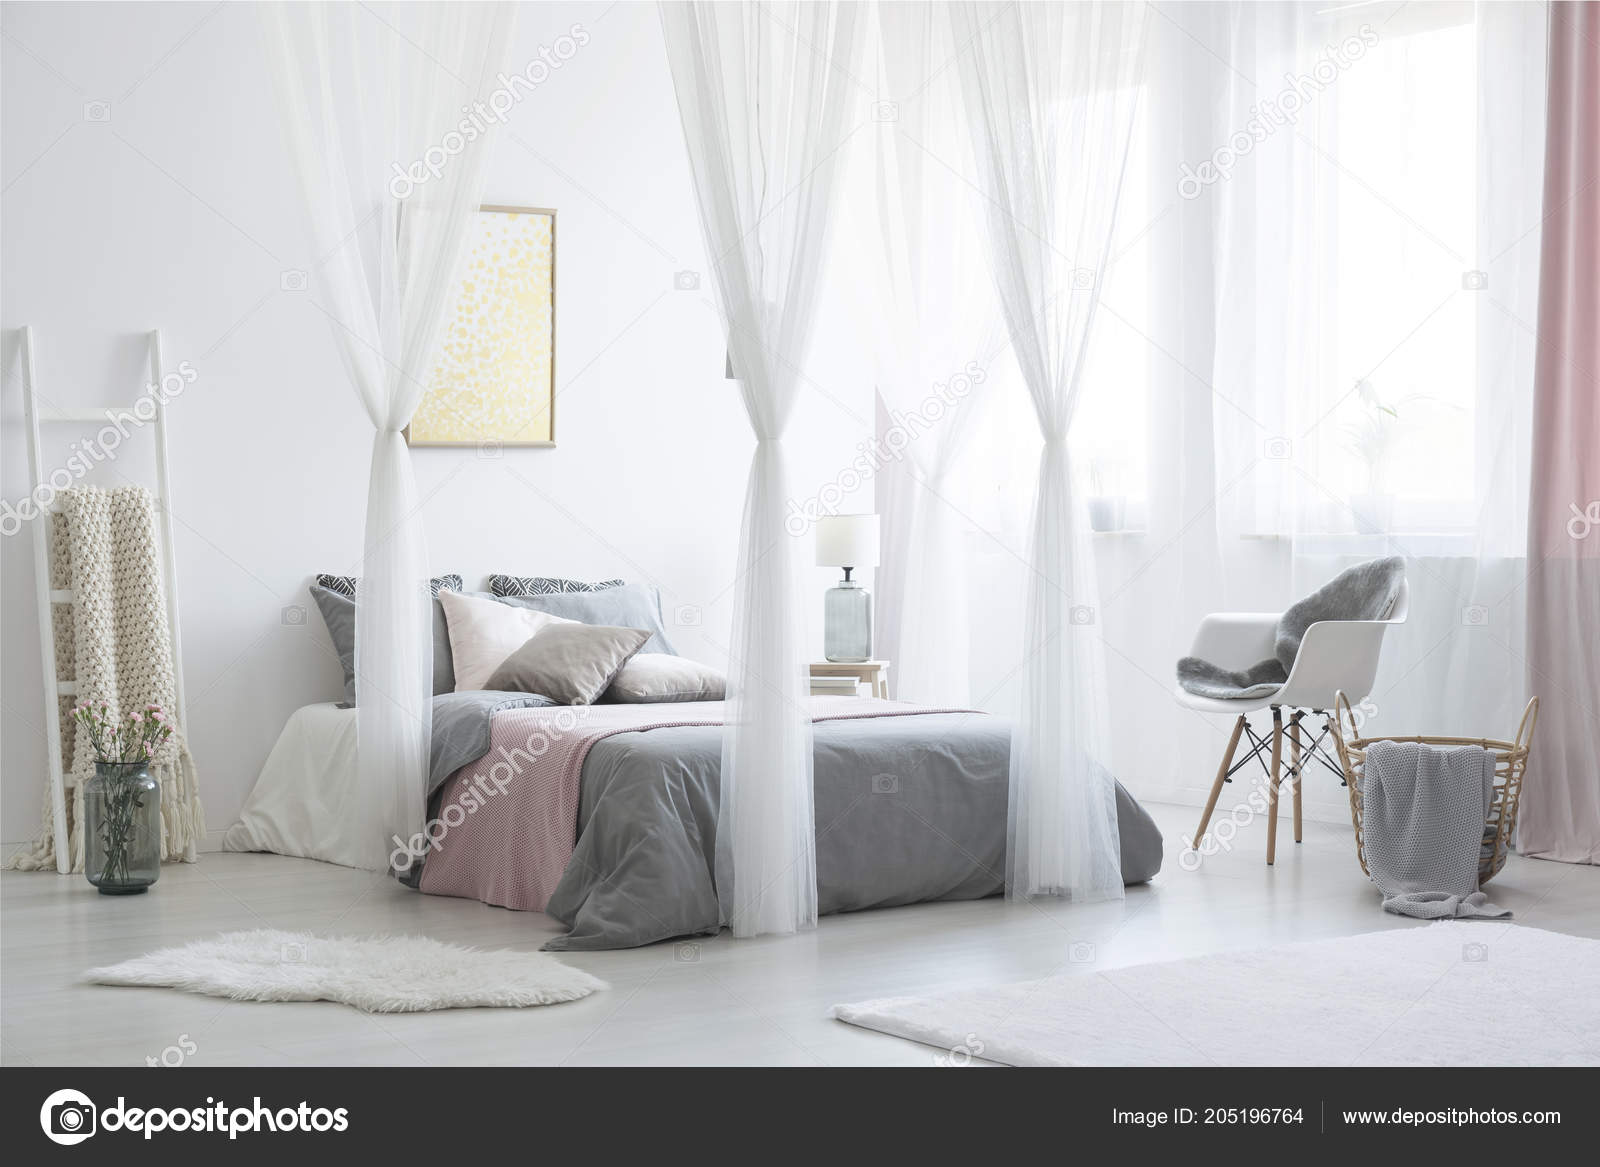 Grey Armchair Next Canopied Bed White Bedroom Interior Posters ...